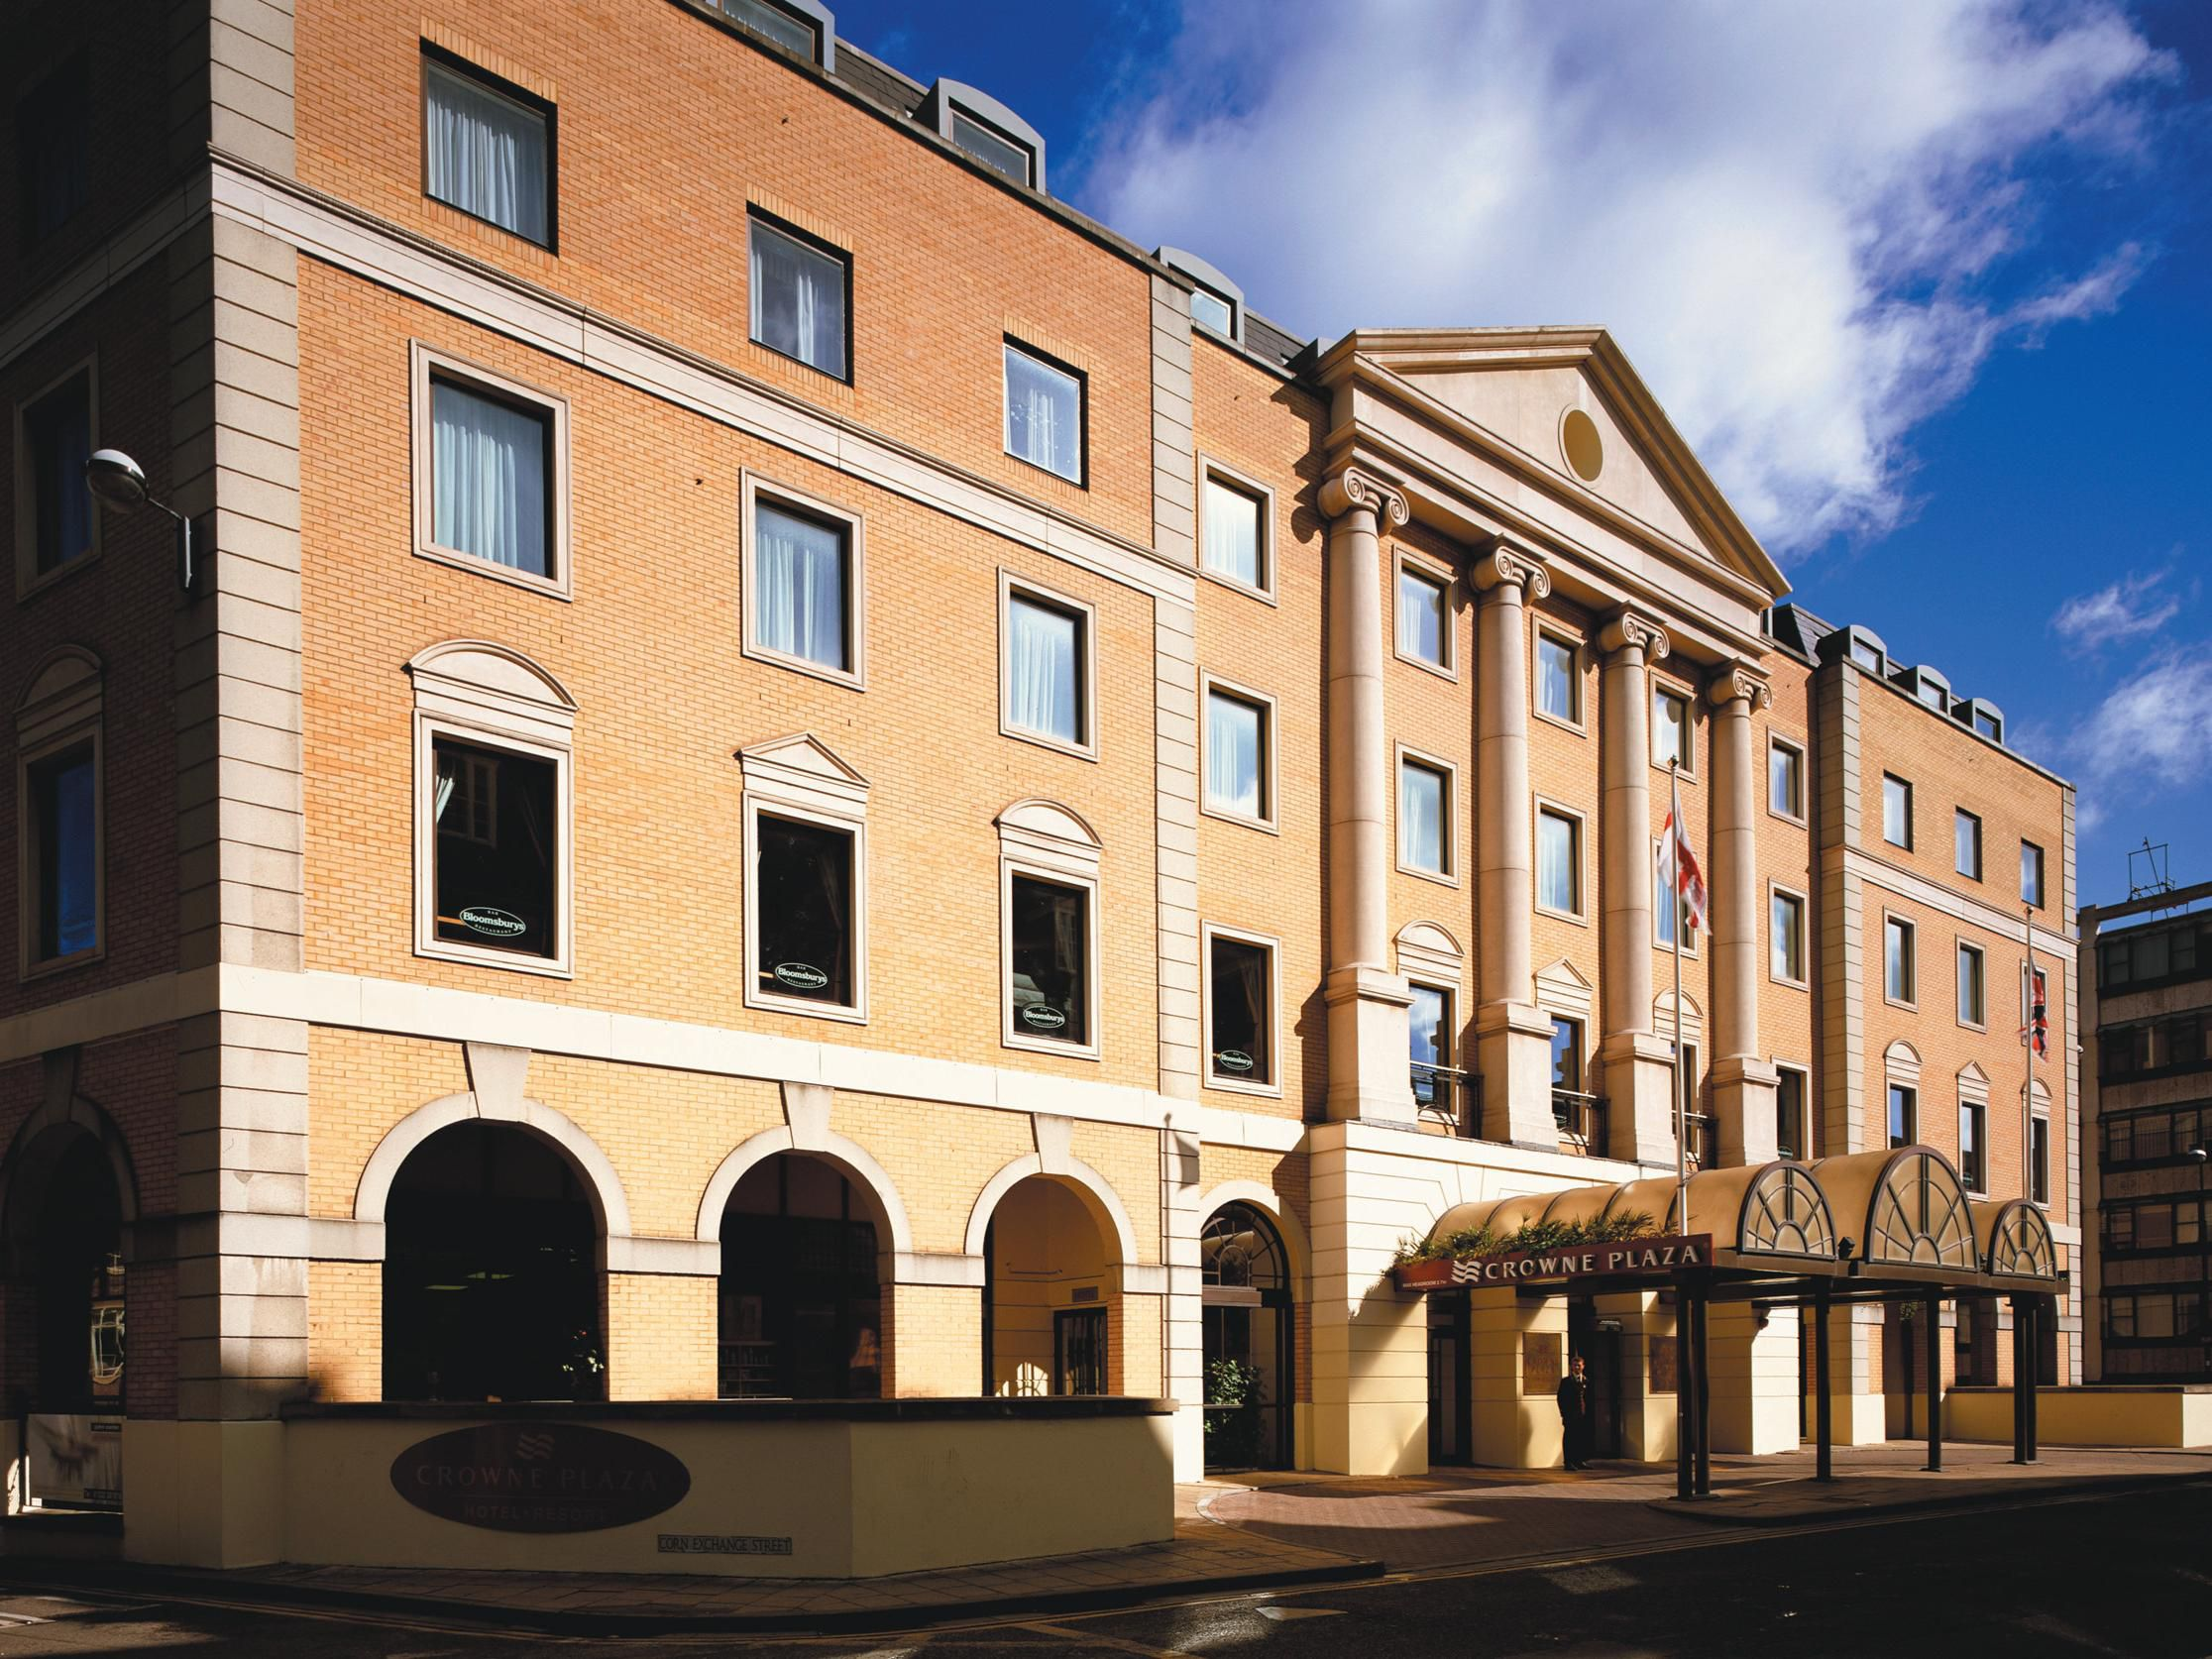 Crowne Plaza Hotel located on Downing Street, Cambridge